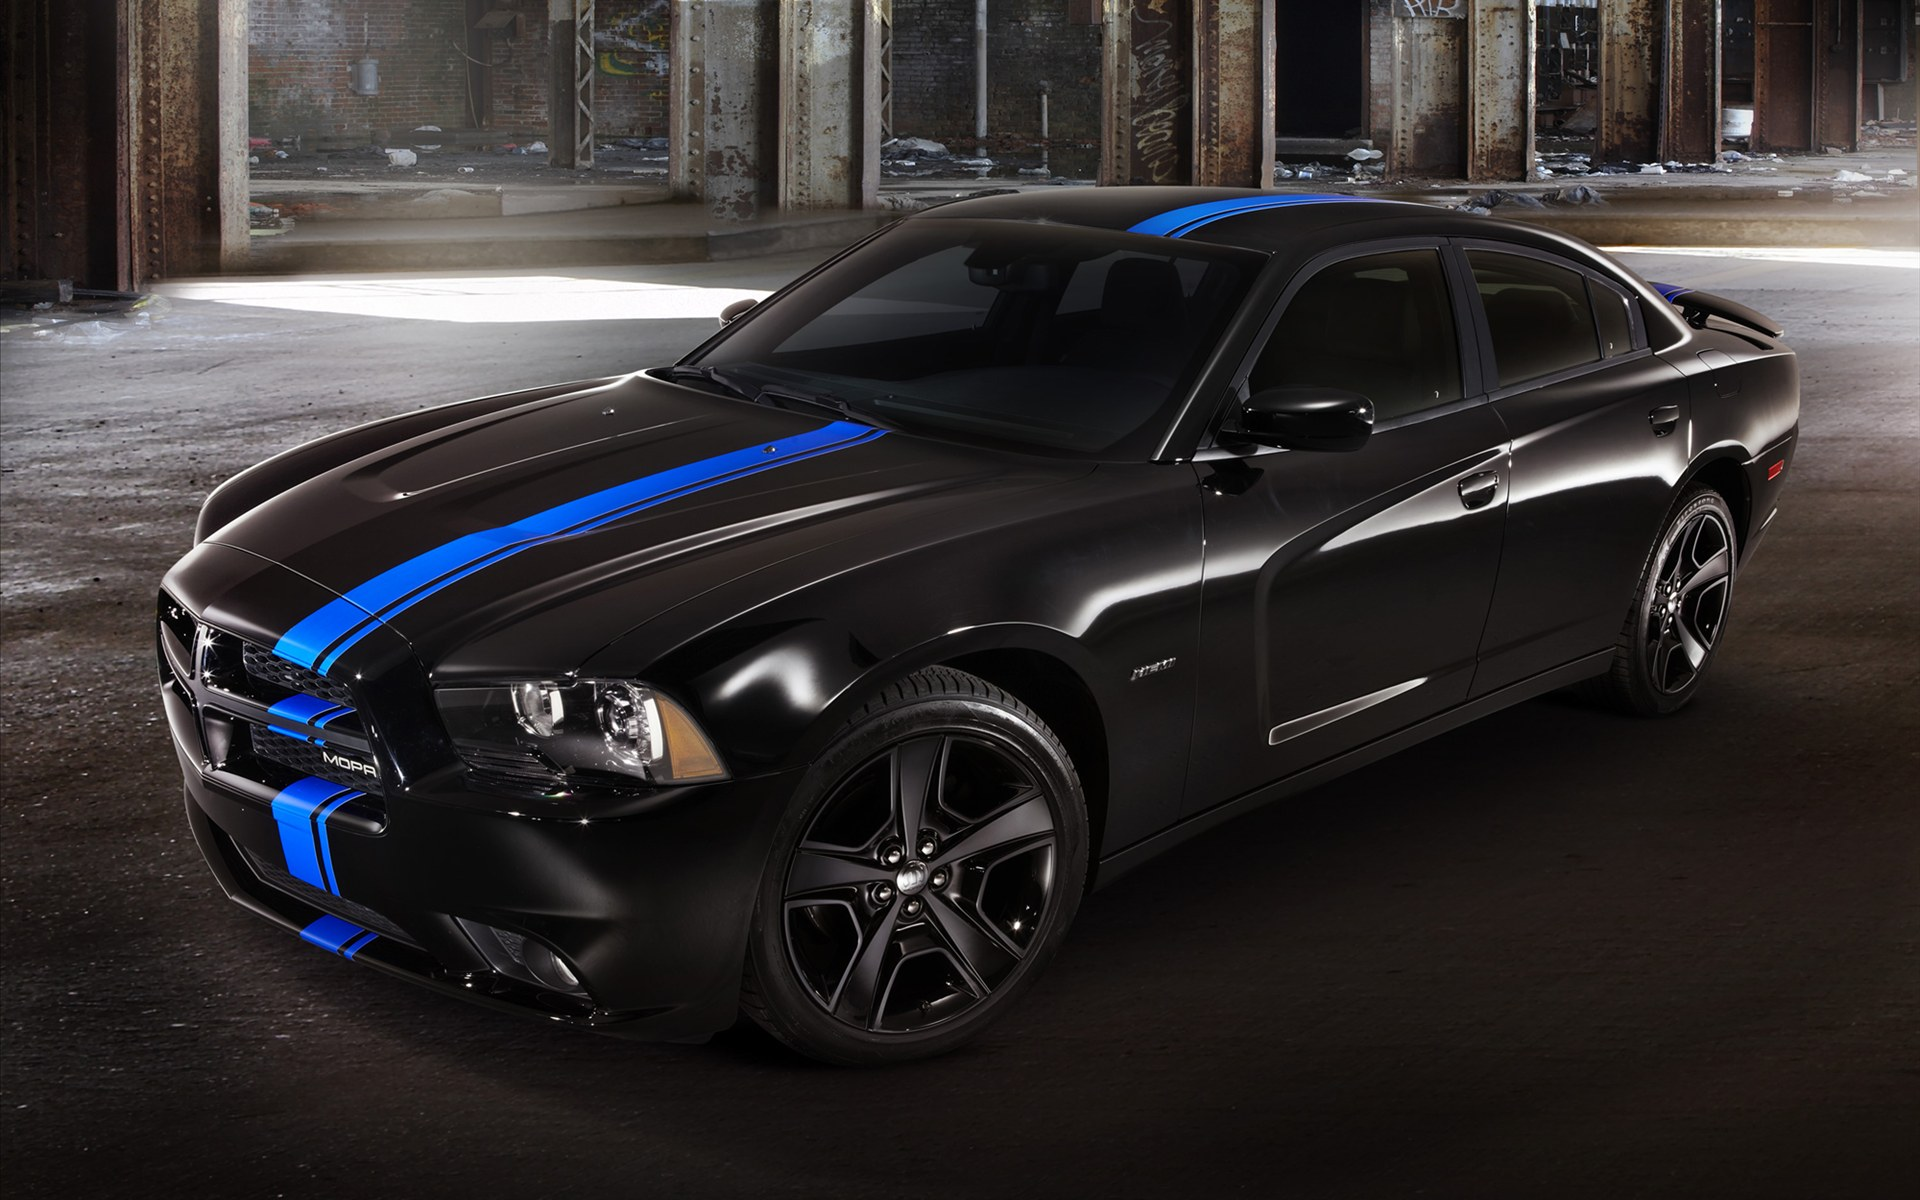 Dodge Charger Car Wallpapers 2011 Dodge Charger Mopar Wallpaper Hd Car Wallpapers